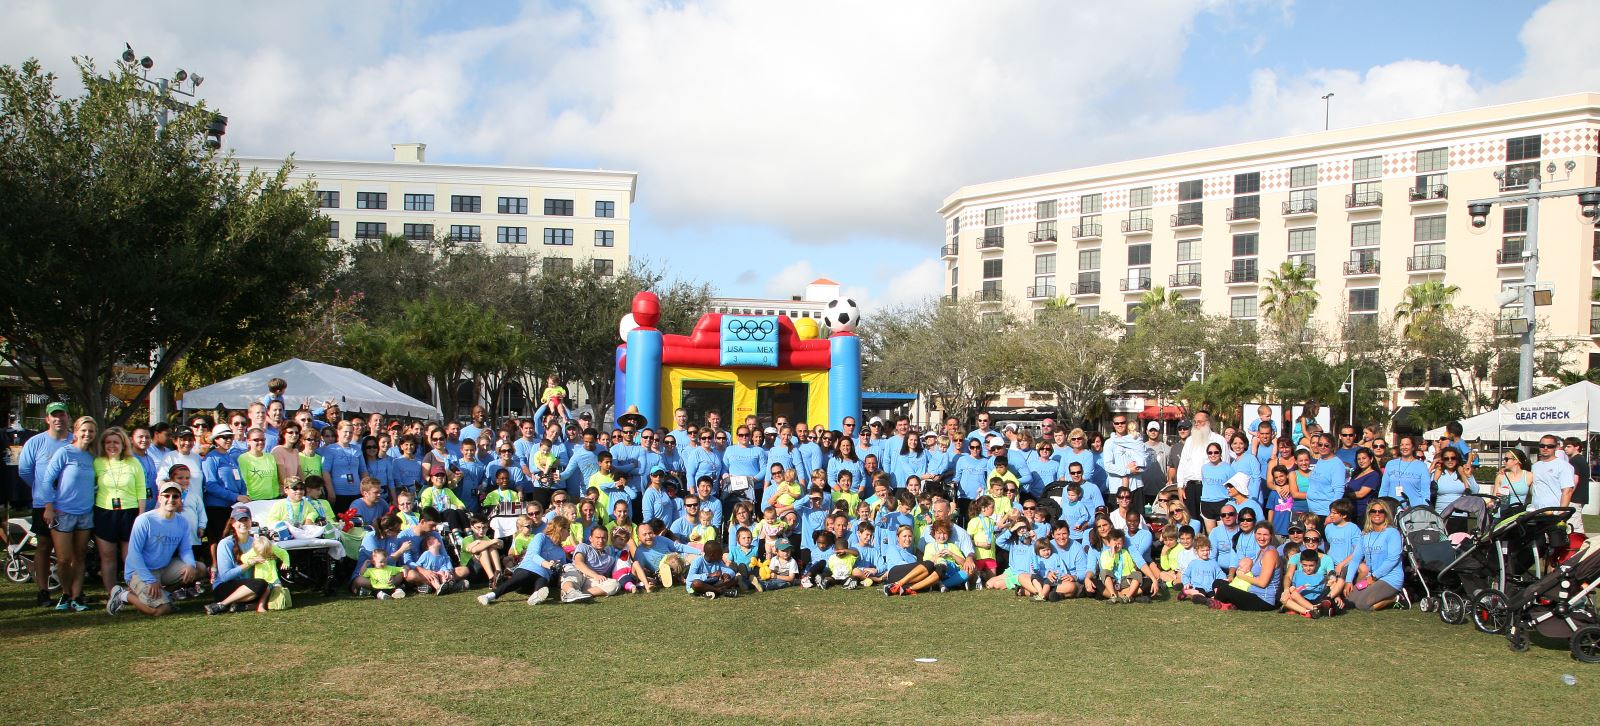 Patients, staff, families, and supporters at the 2013 Paley 5K Walk / Run